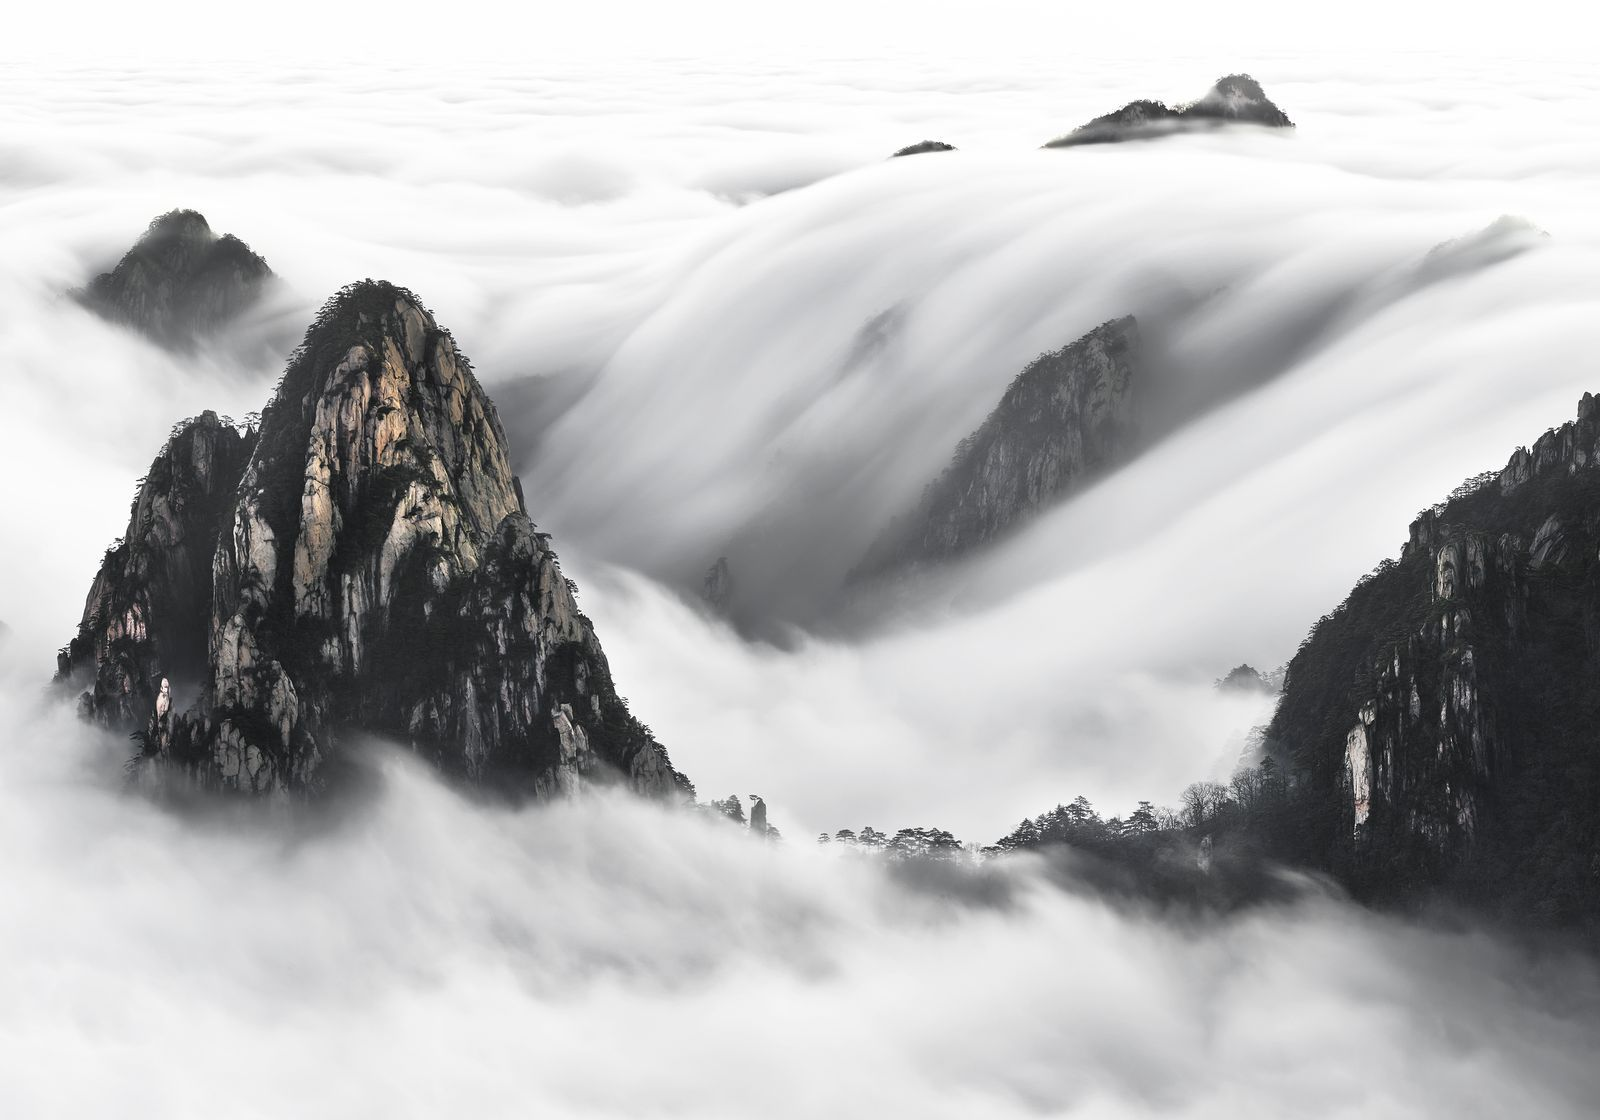 Picture of a mountain peak above thick cloud cover, China